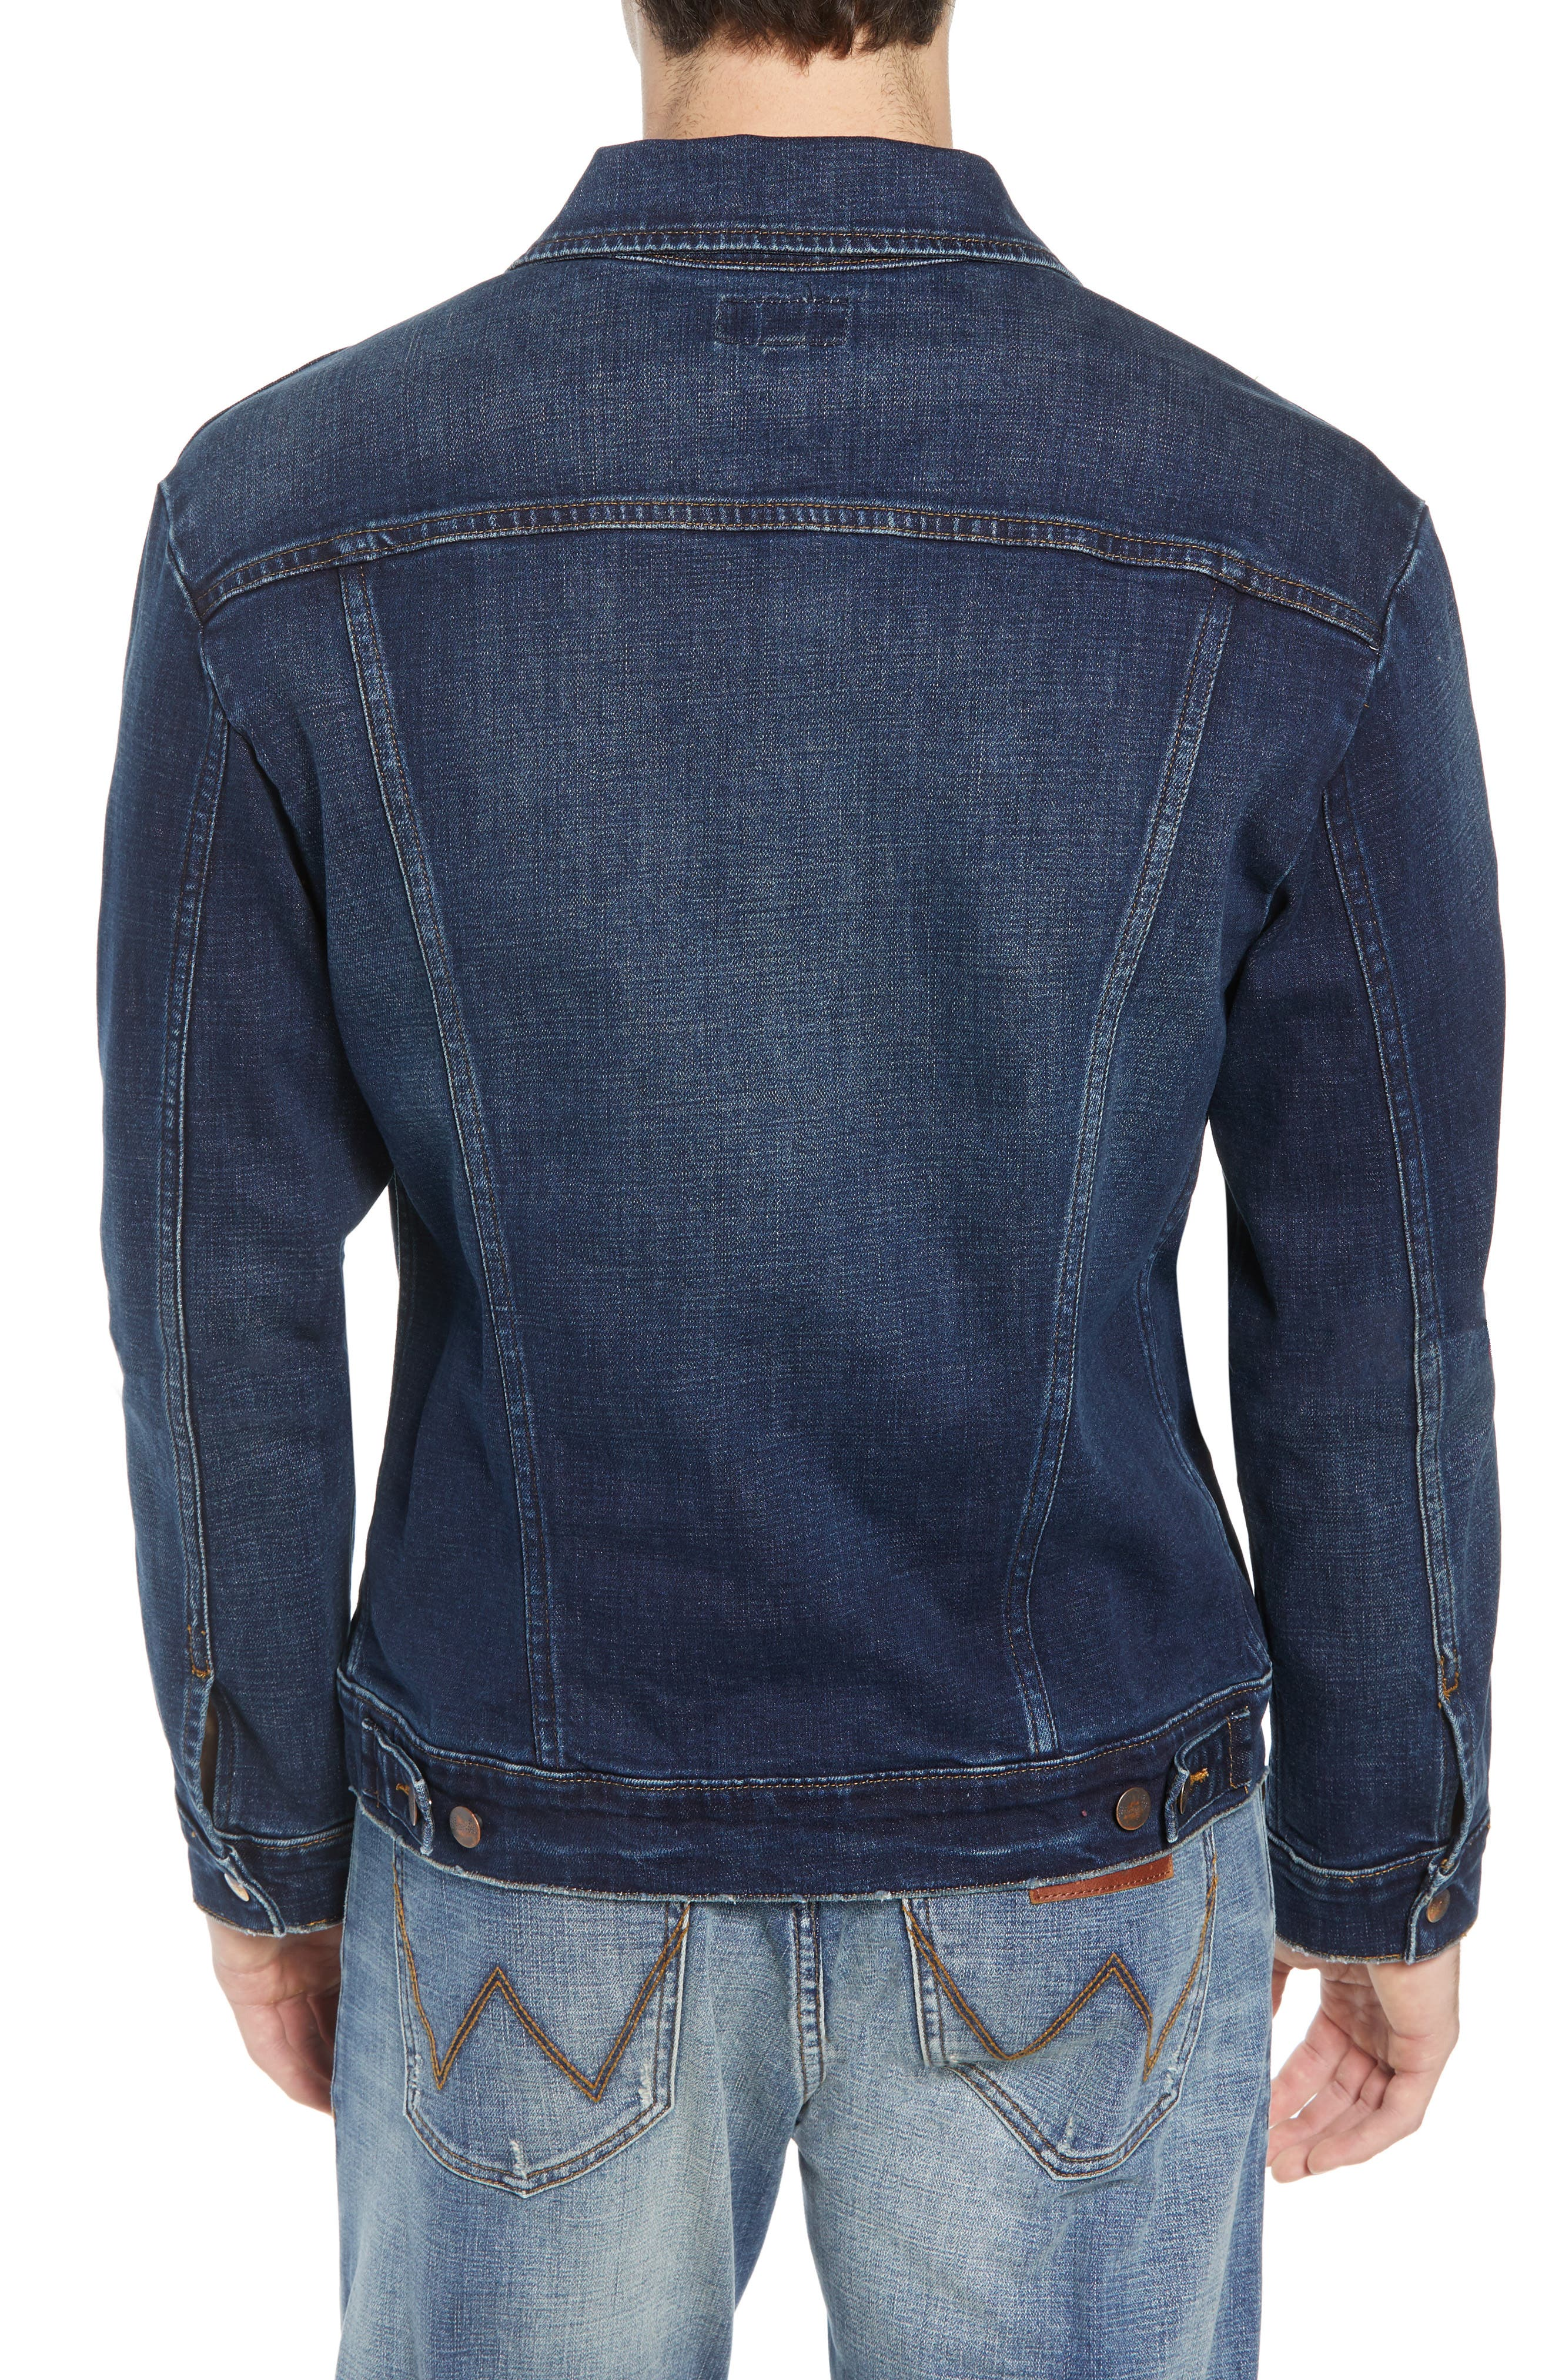 Heritage Denim Jacket,                             Alternate thumbnail 2, color,                             DARK WASH